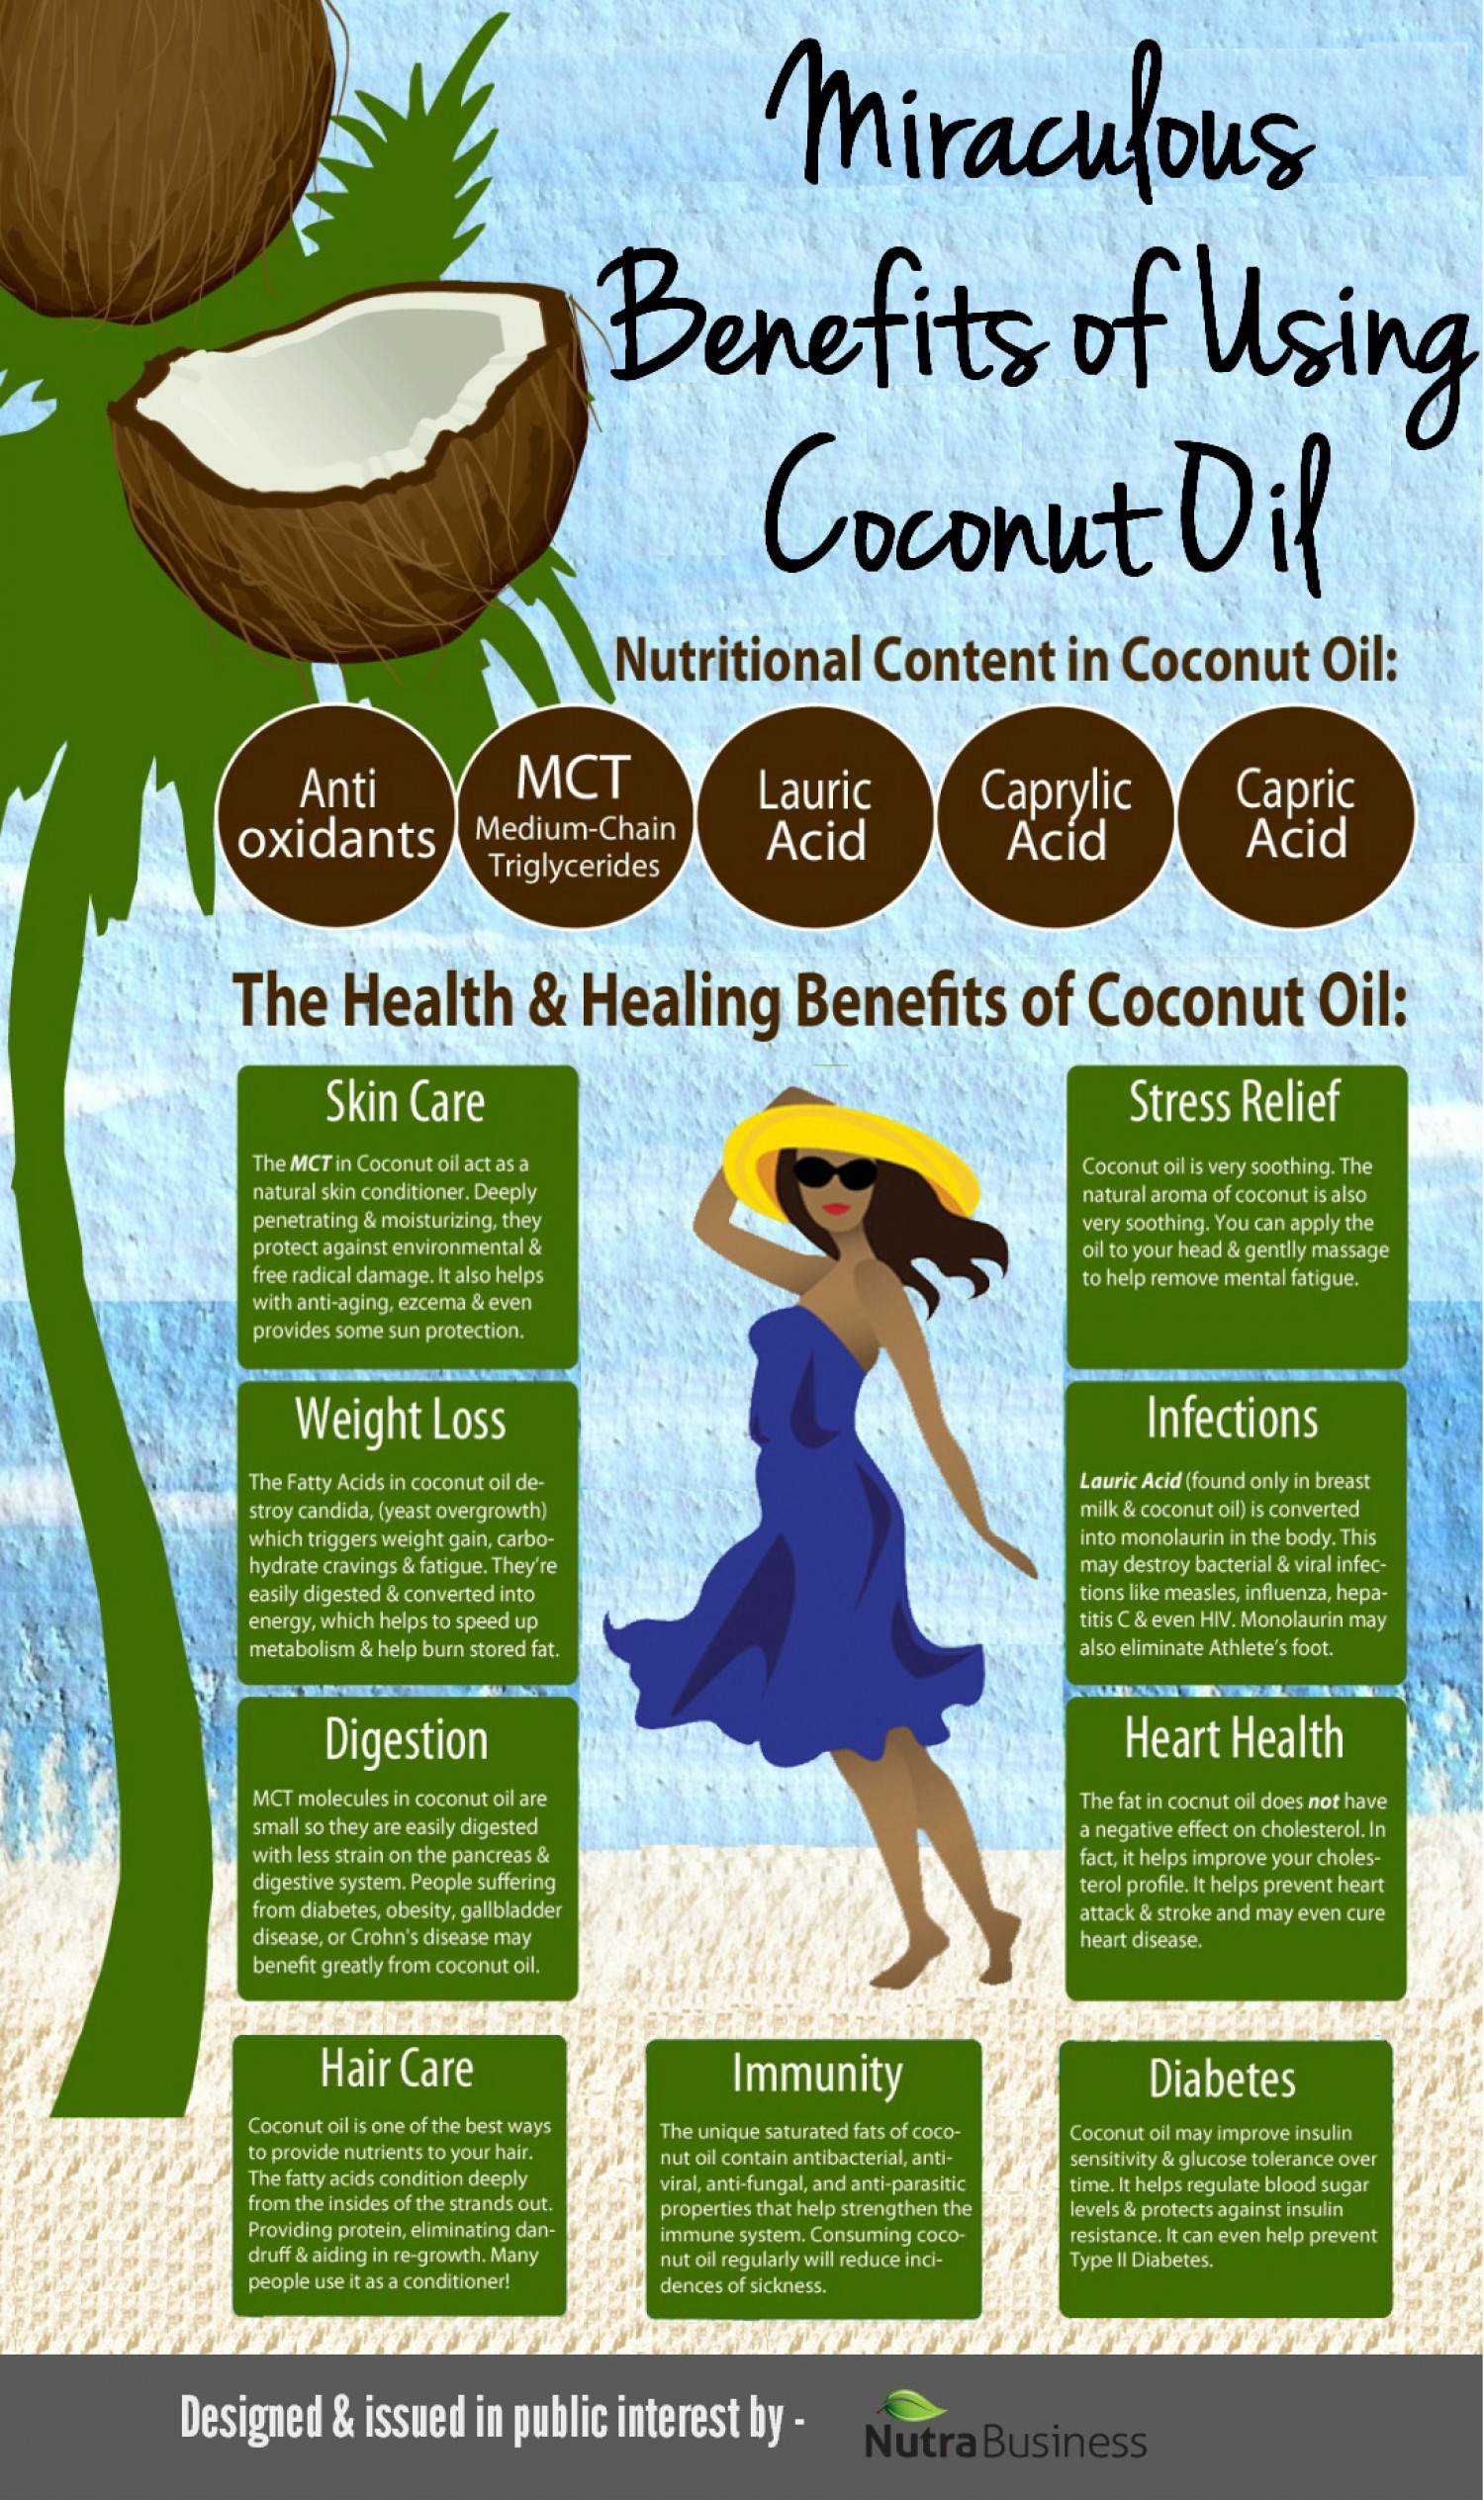 Miraculous Benefits of Using Coconut Oil Infographic